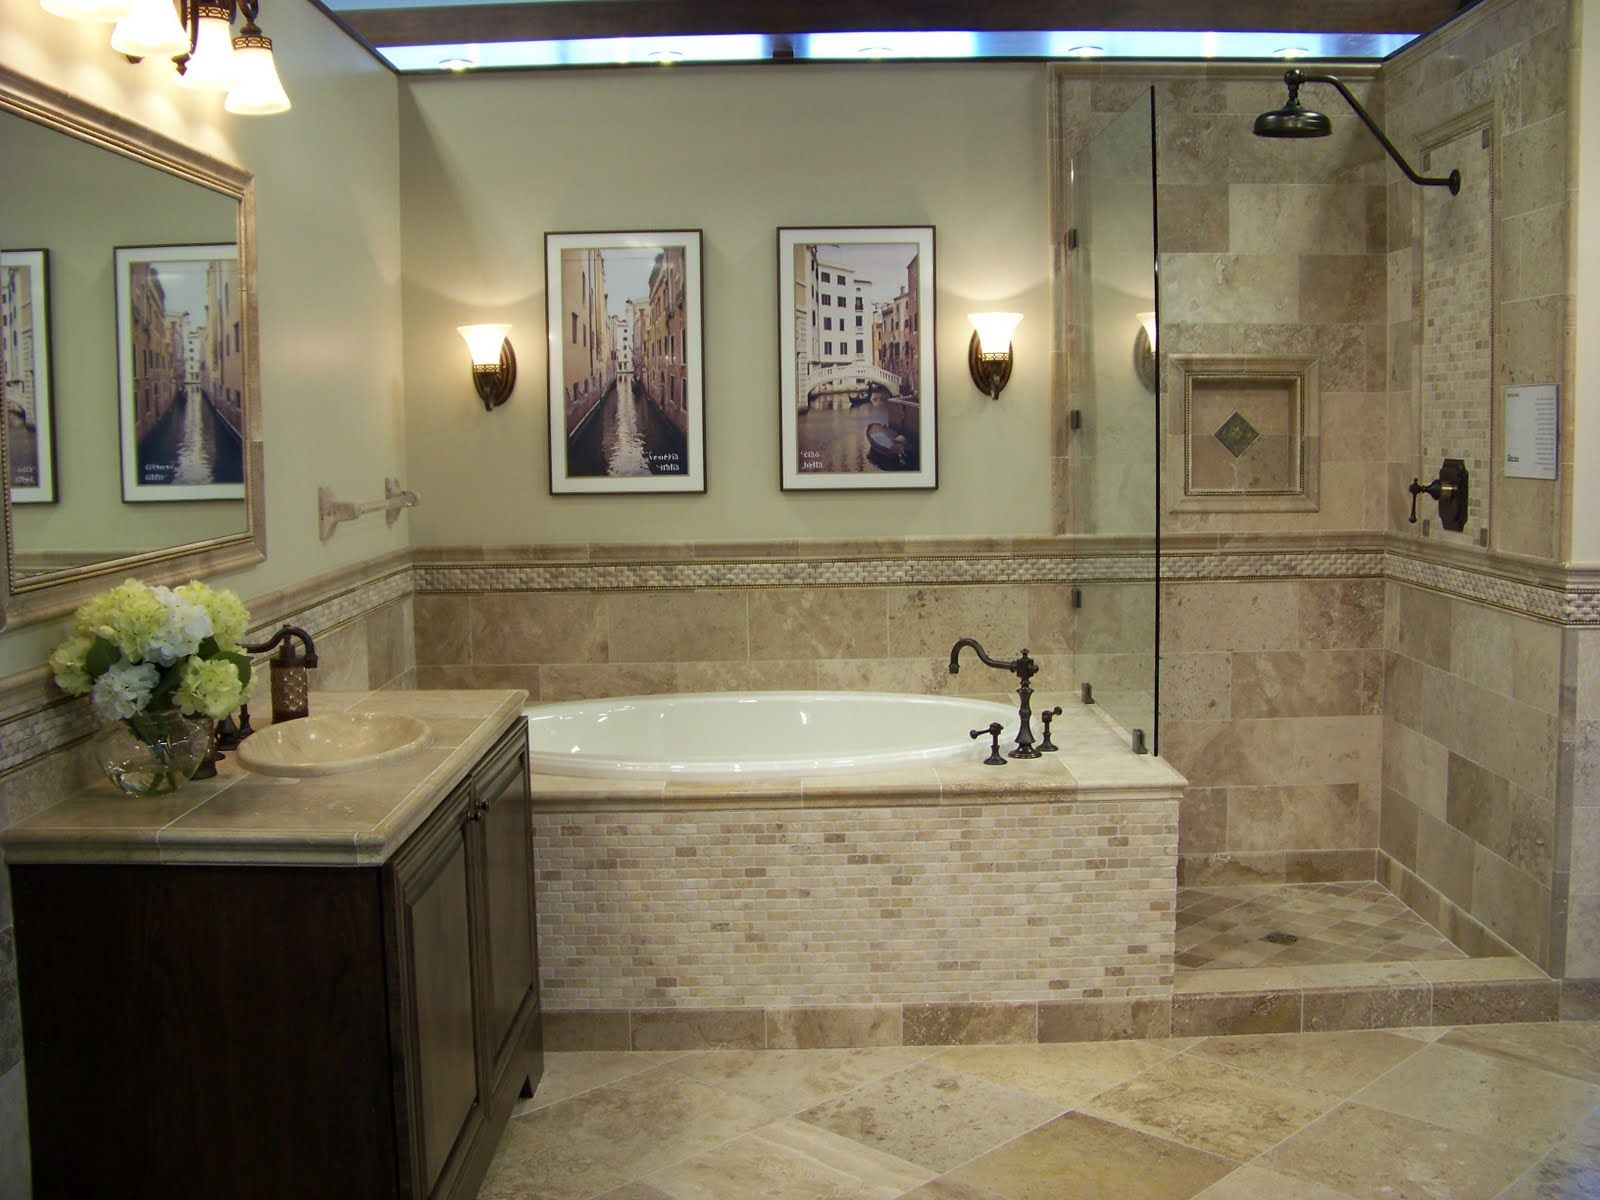 Tile Decor Store Stunning Home Decor Budgetista Bathroom Inspiration  The Tile Shop Design Decoration